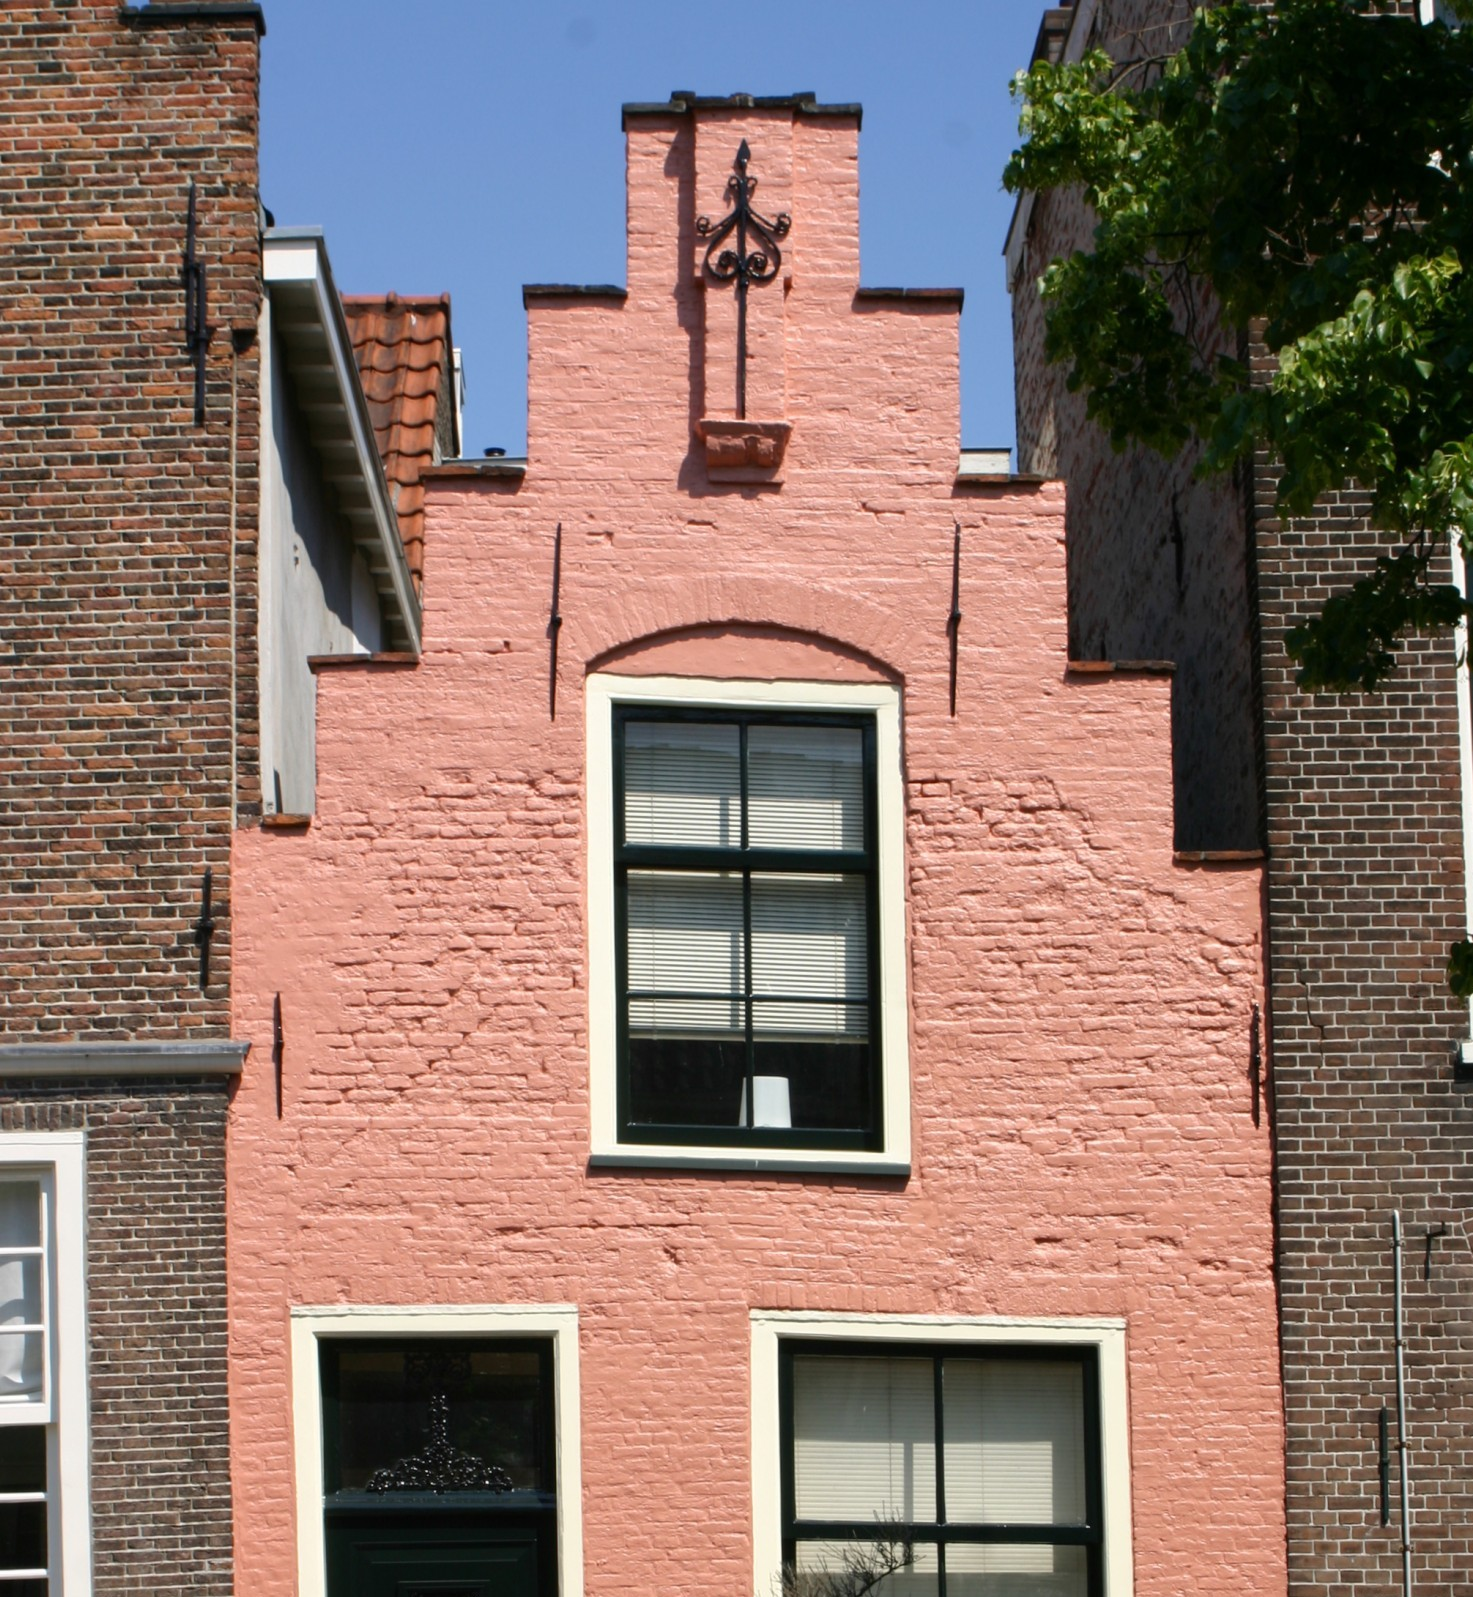 Pink houses, green hares and Dutch prostitutes